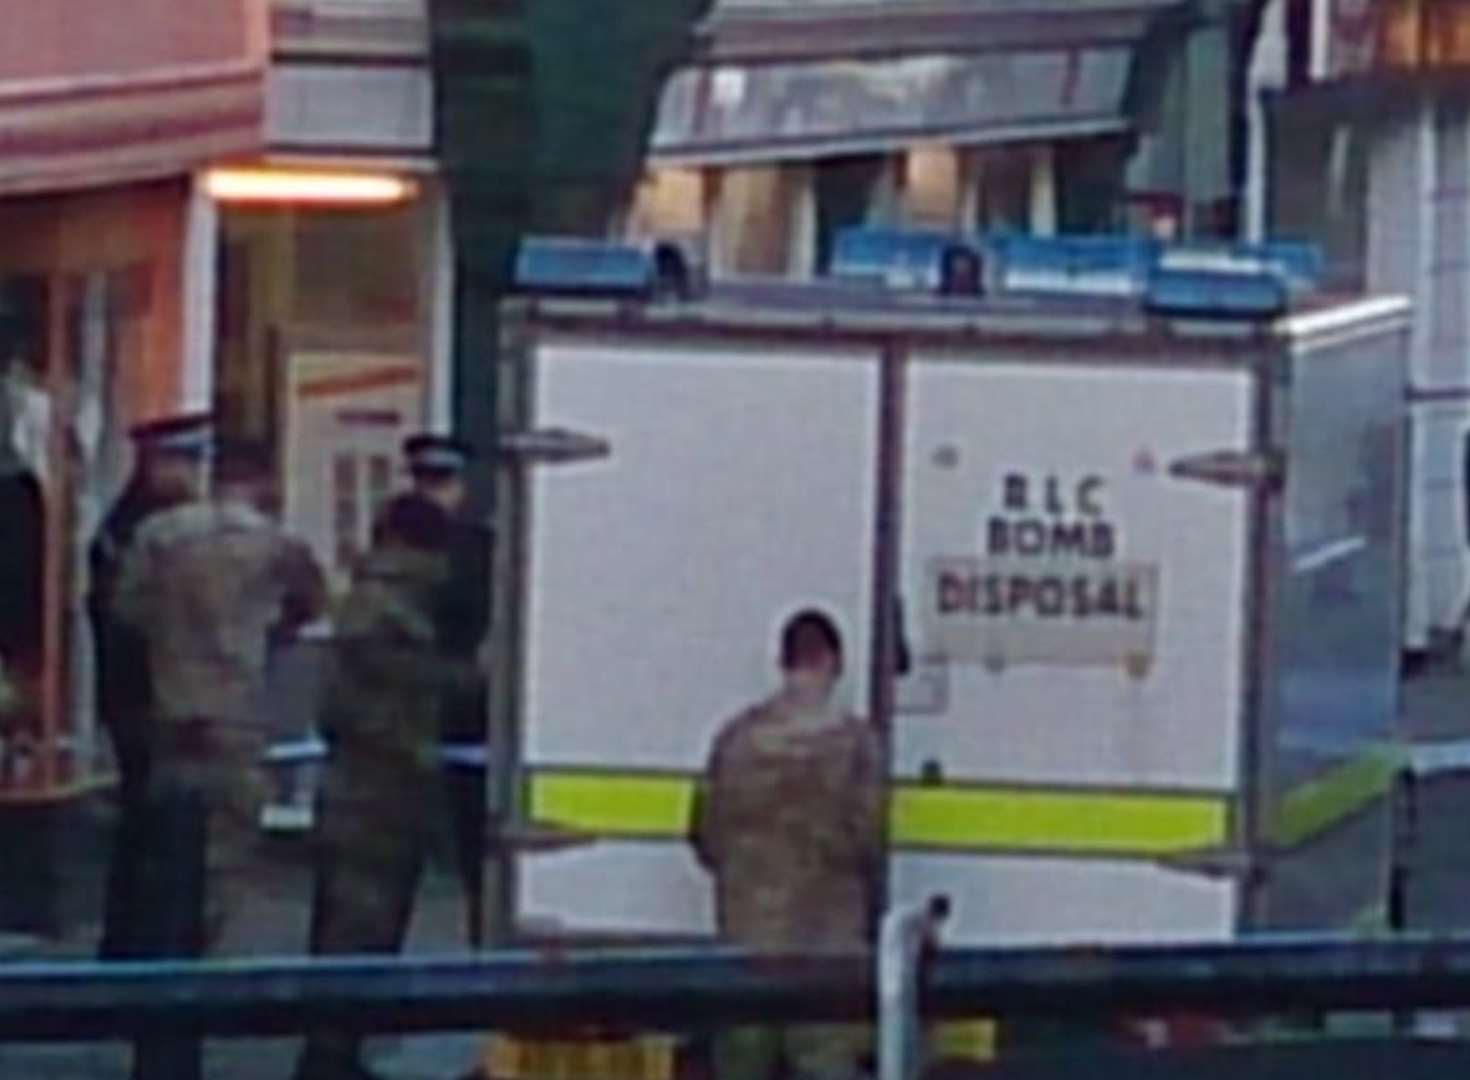 Bomb squad called as high street evacuated